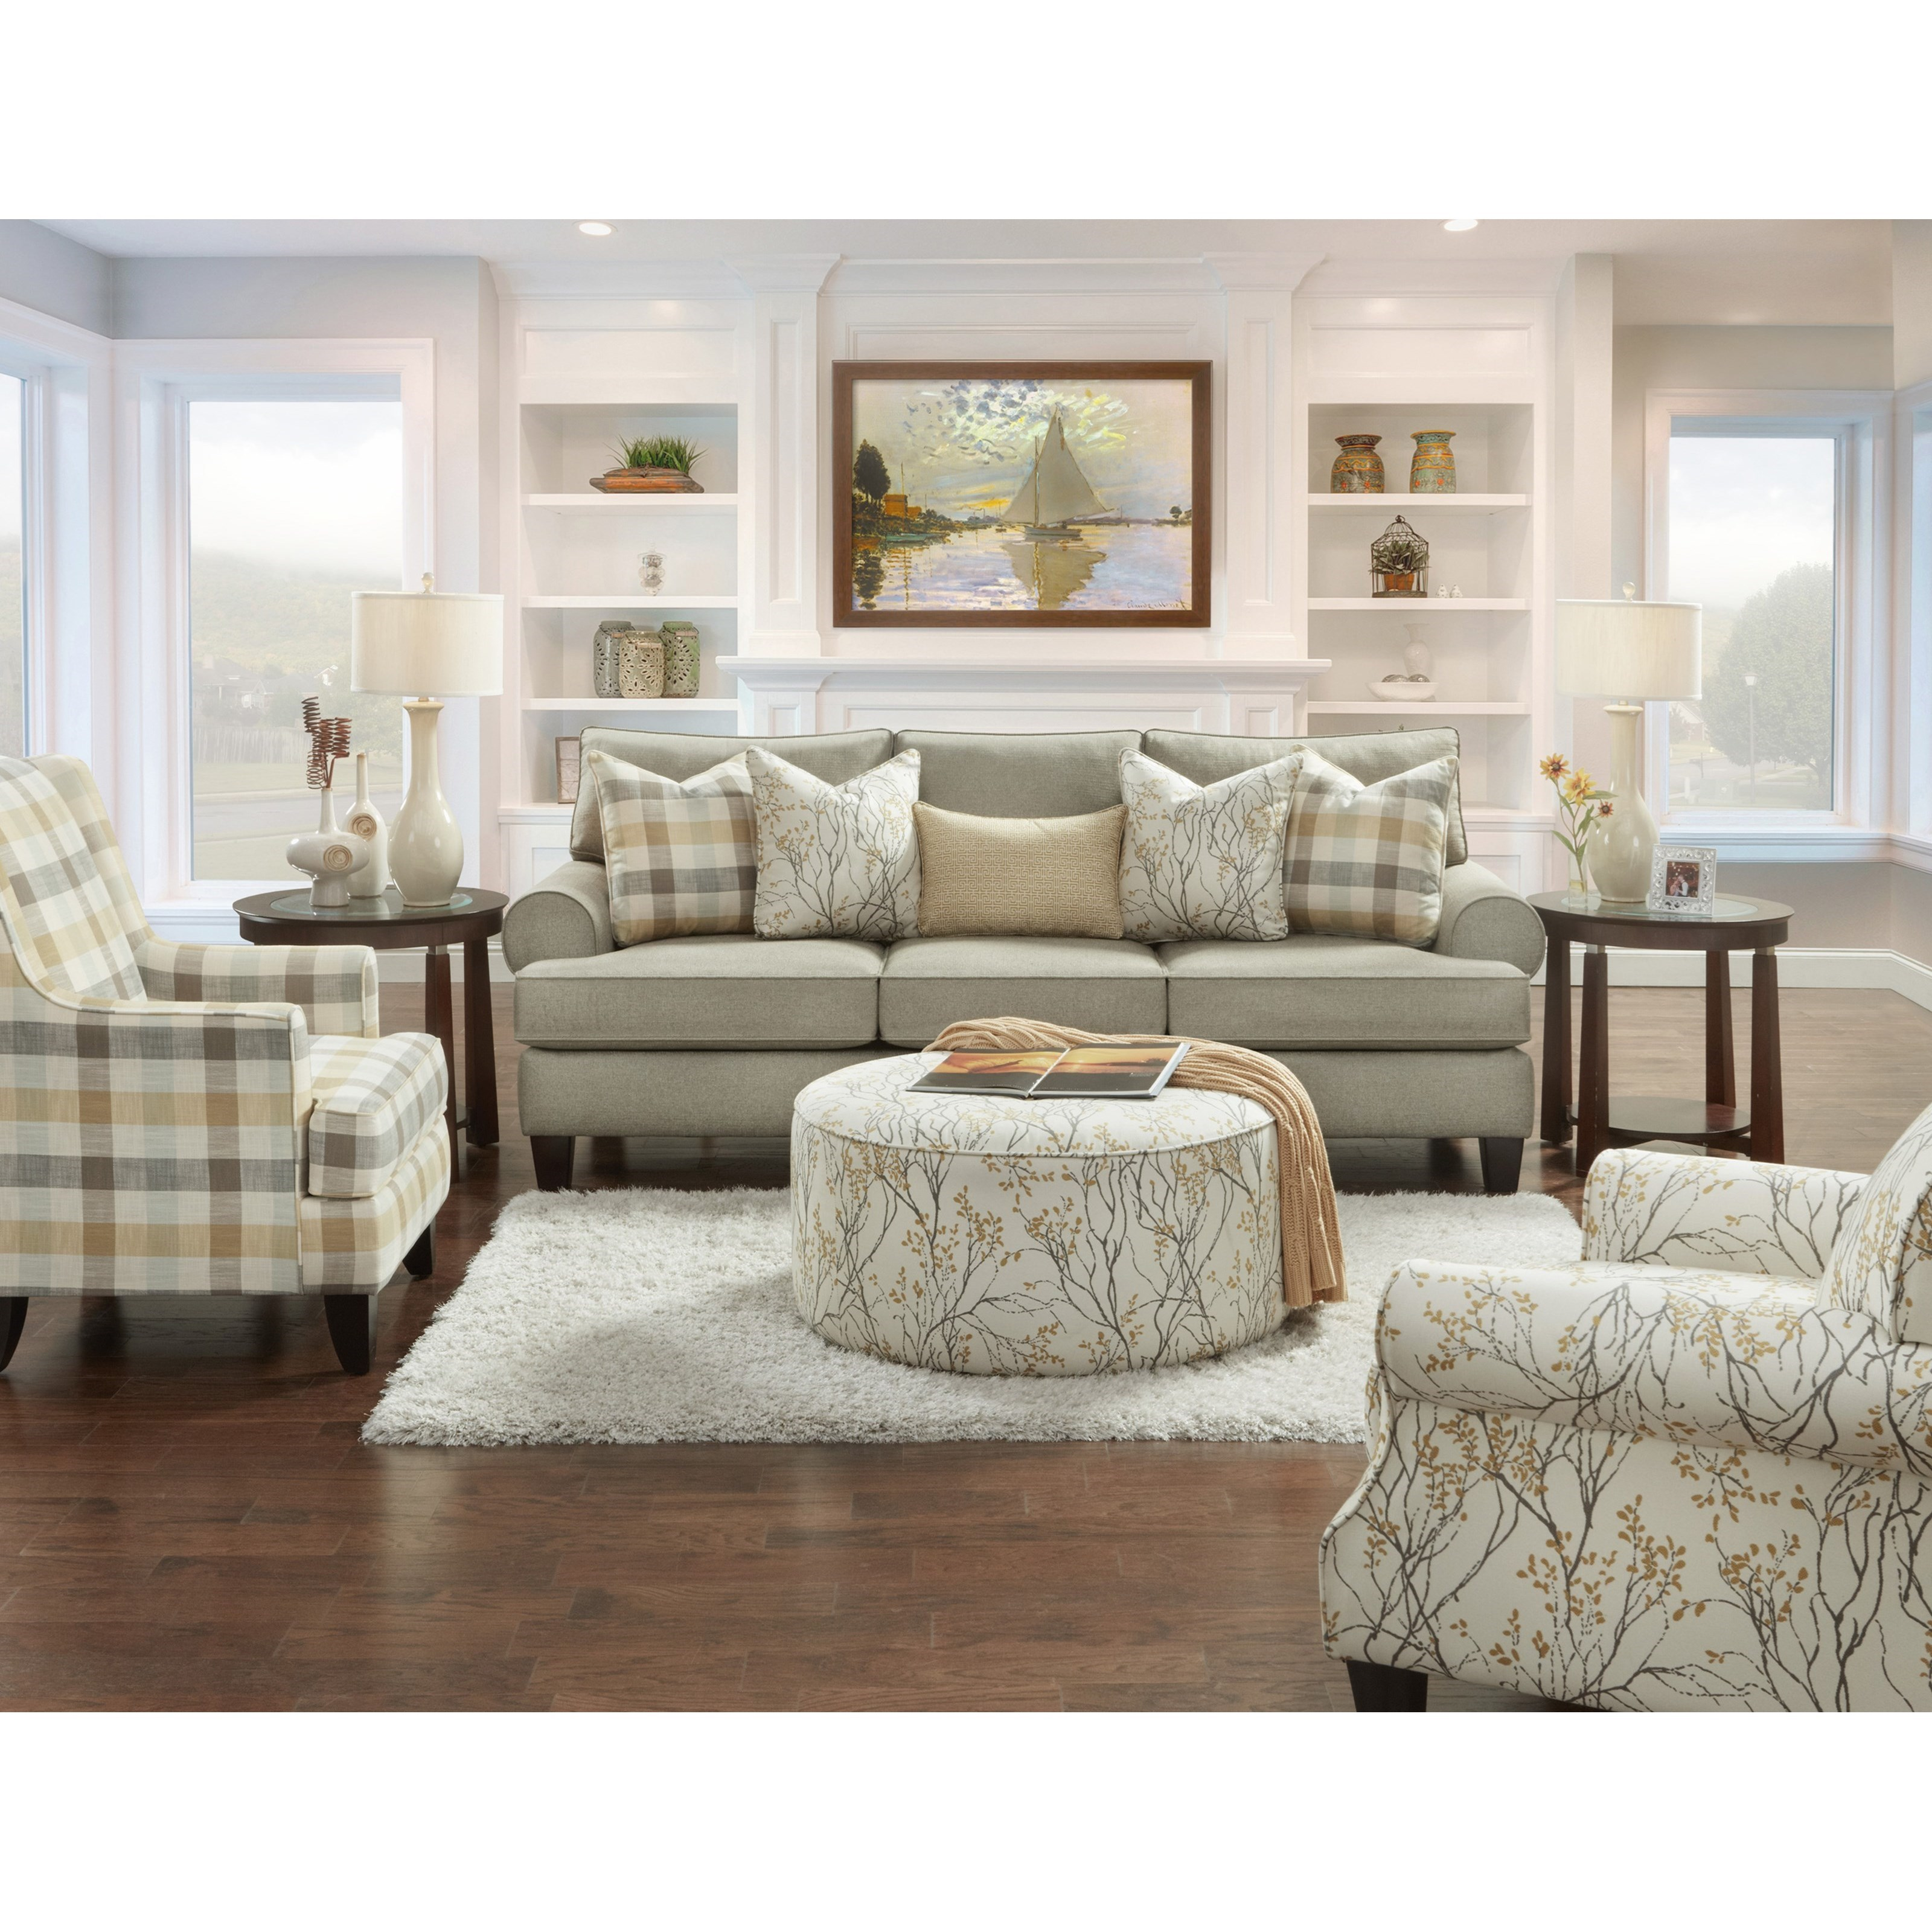 Fusion Furniture 4200 Stationary Living Room Group Miskelly Furniture Stationary Living Room